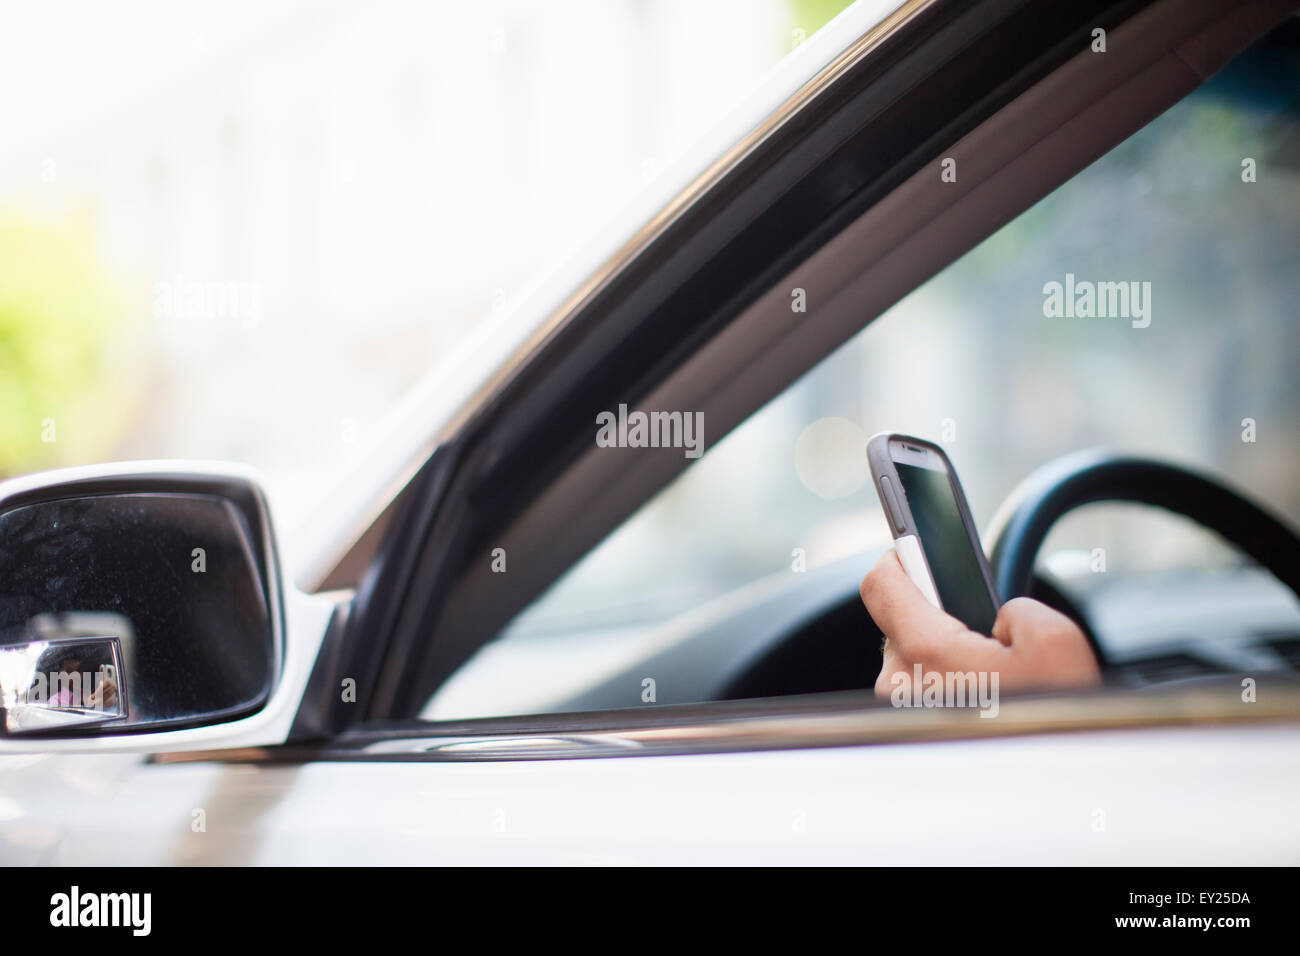 Hand of businessman using smartphone at car window - Stock Image